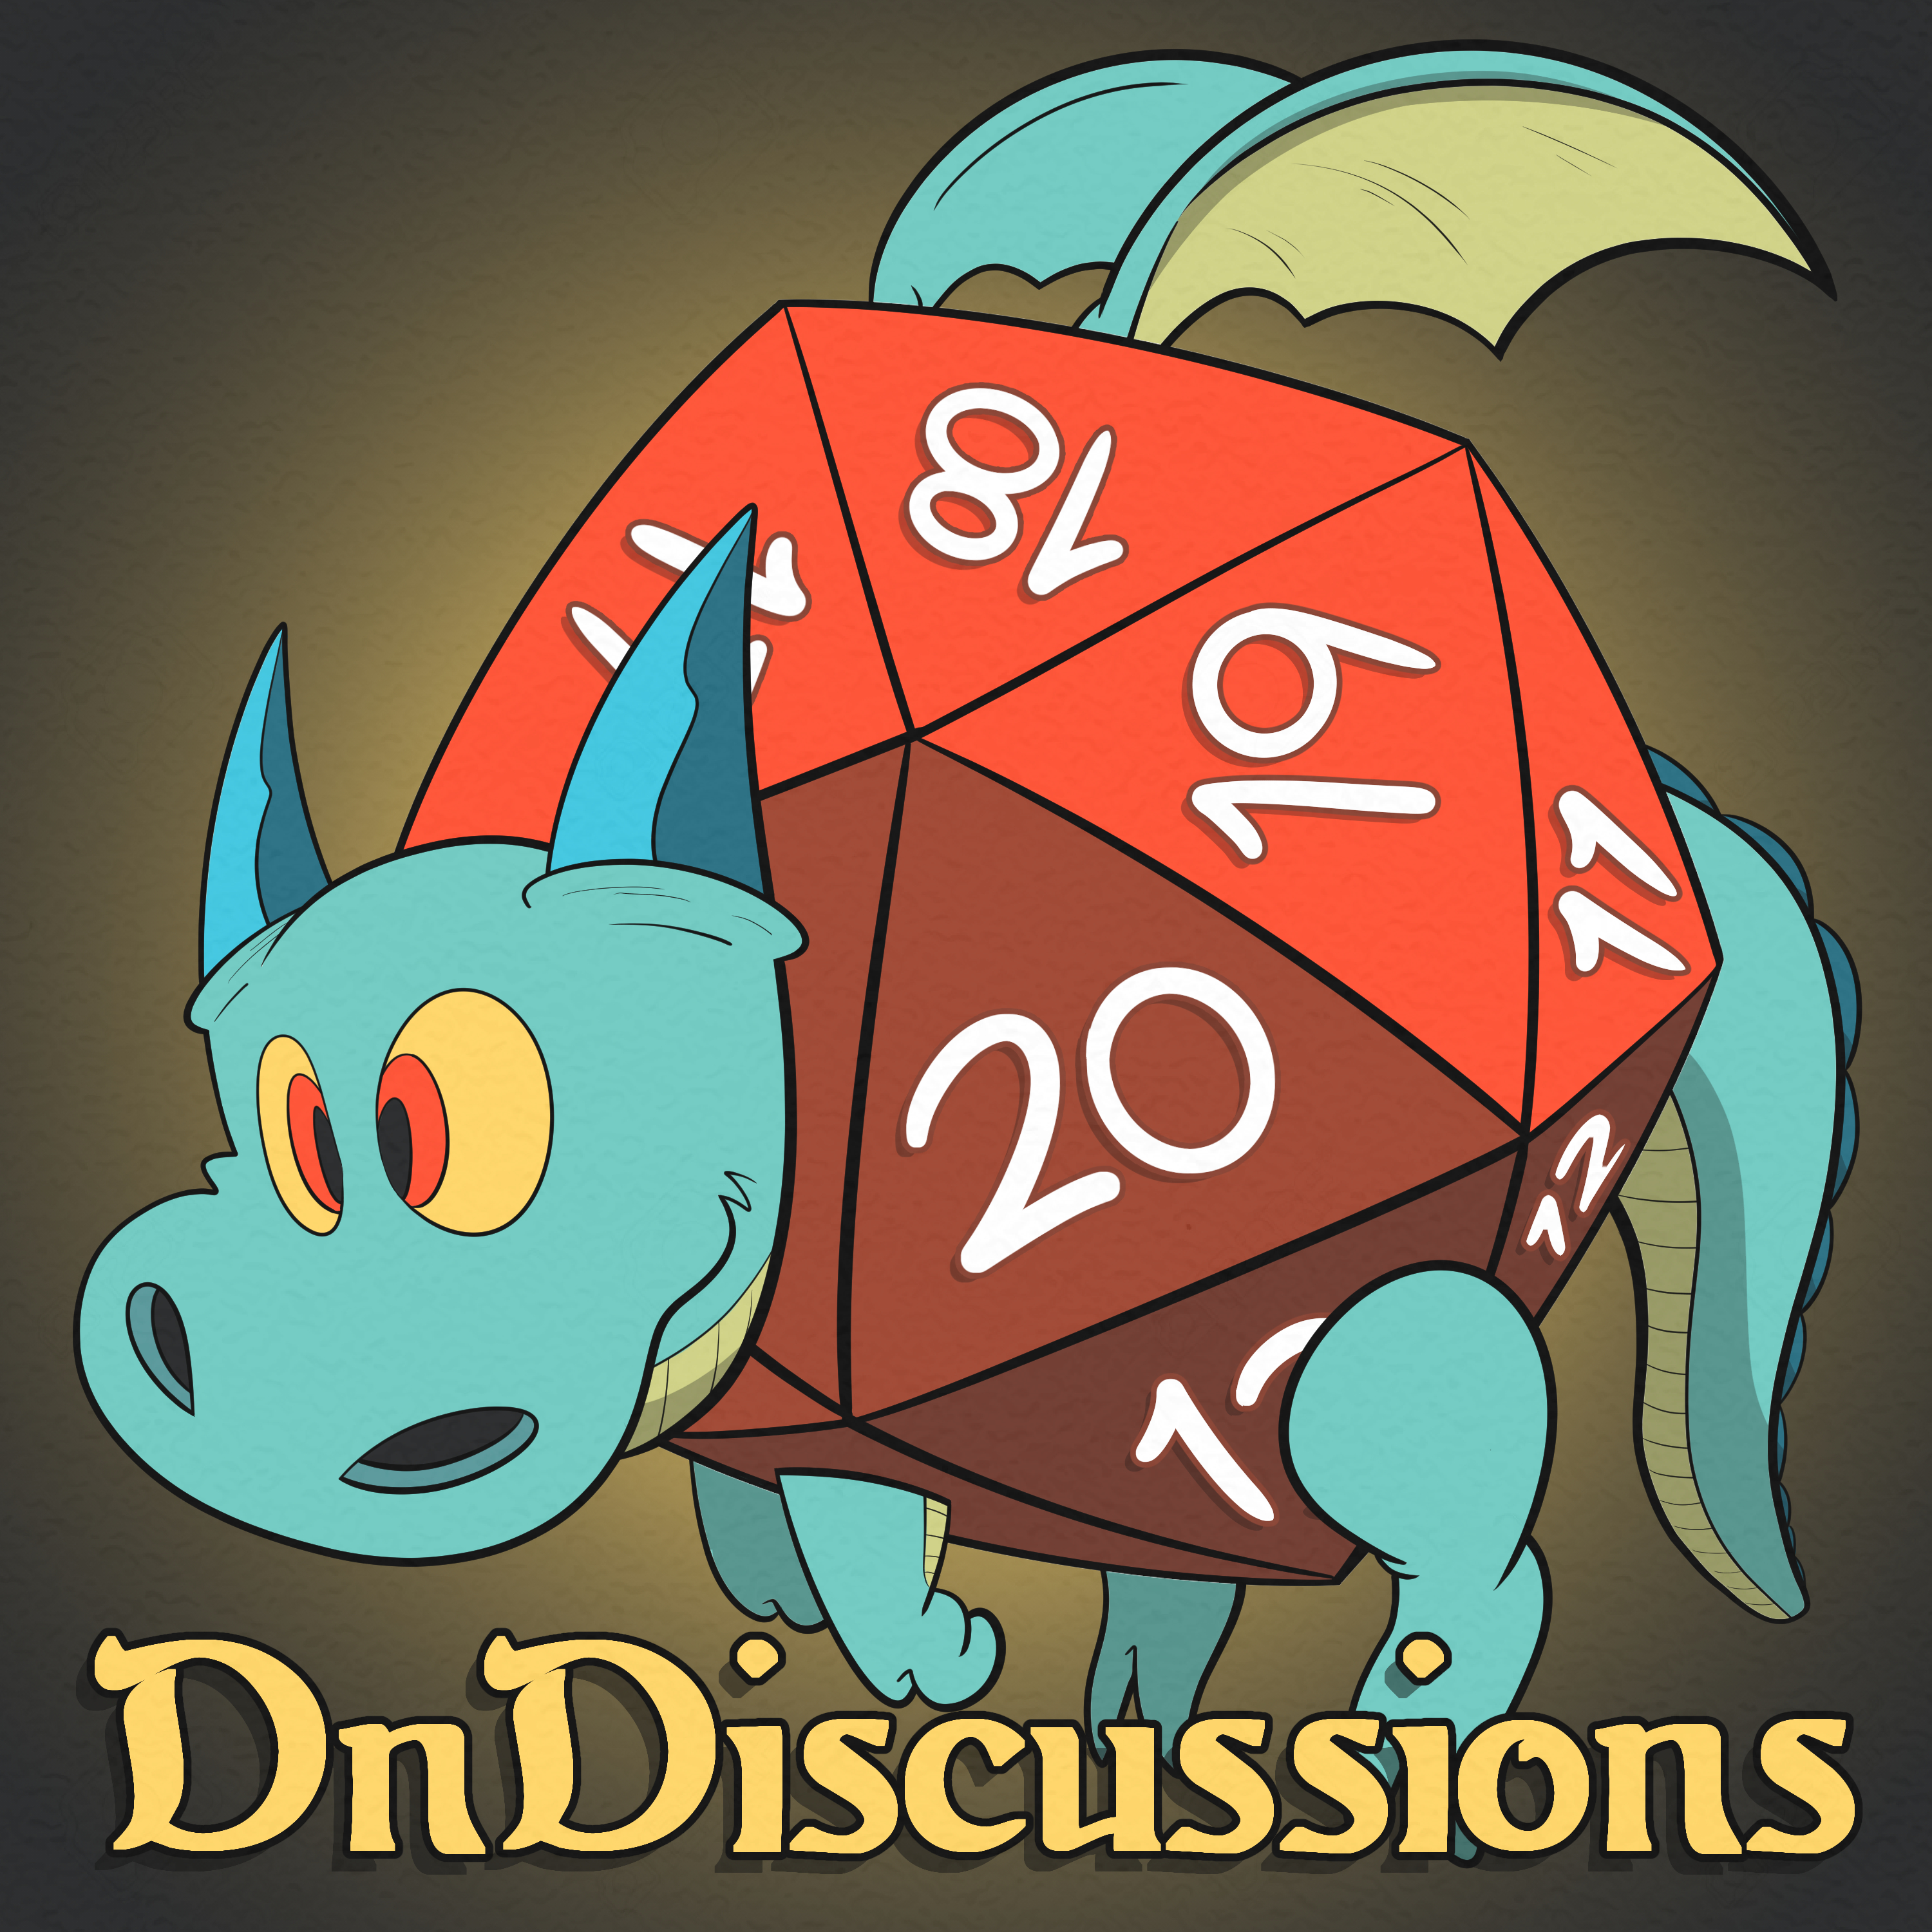 DnDiscussions